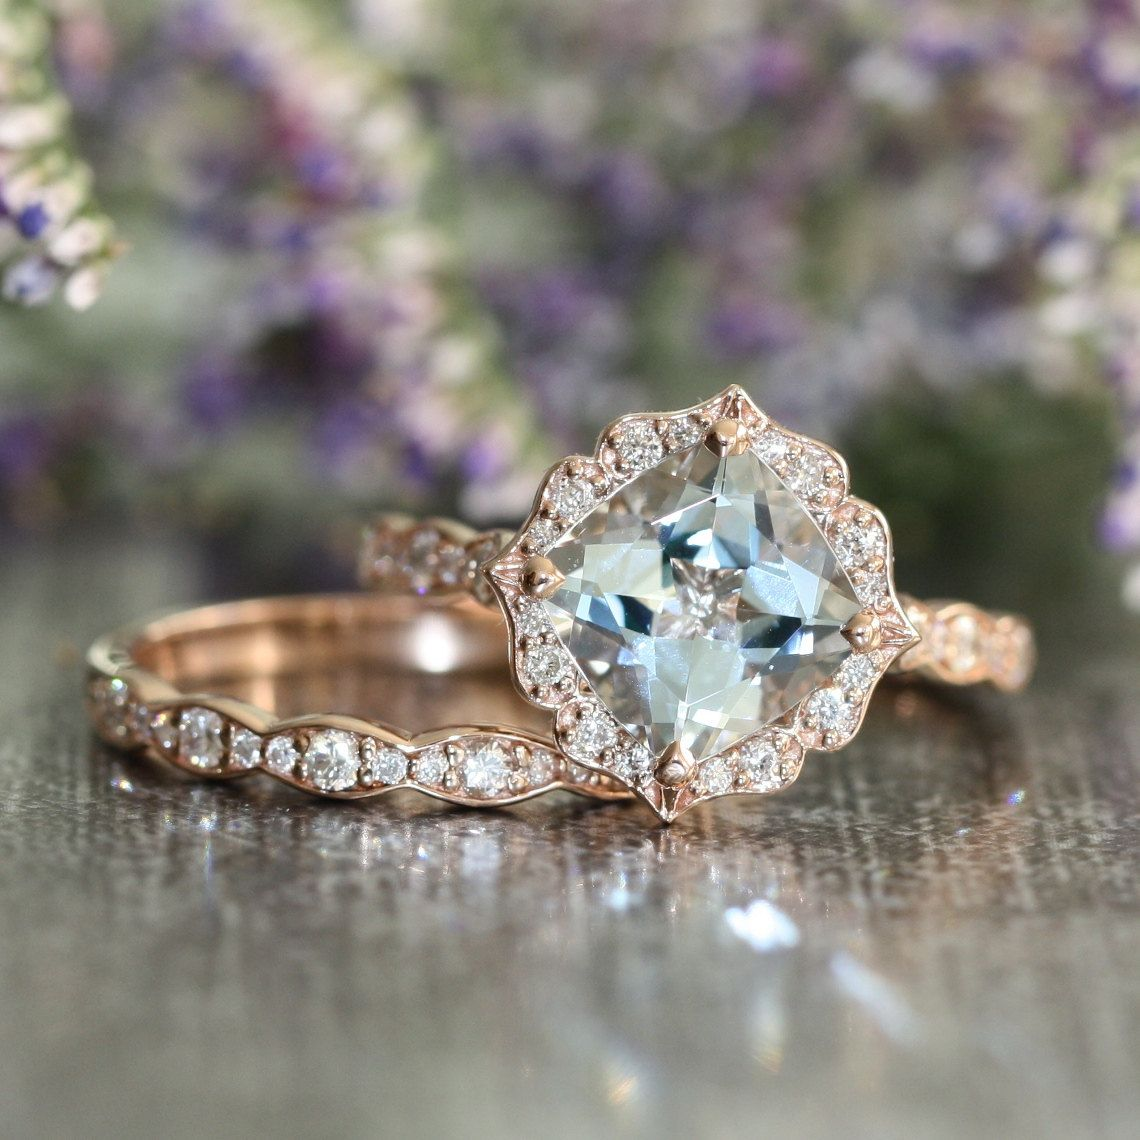 Vintage Floral Aquamarine Engagement Ring and Scalloped